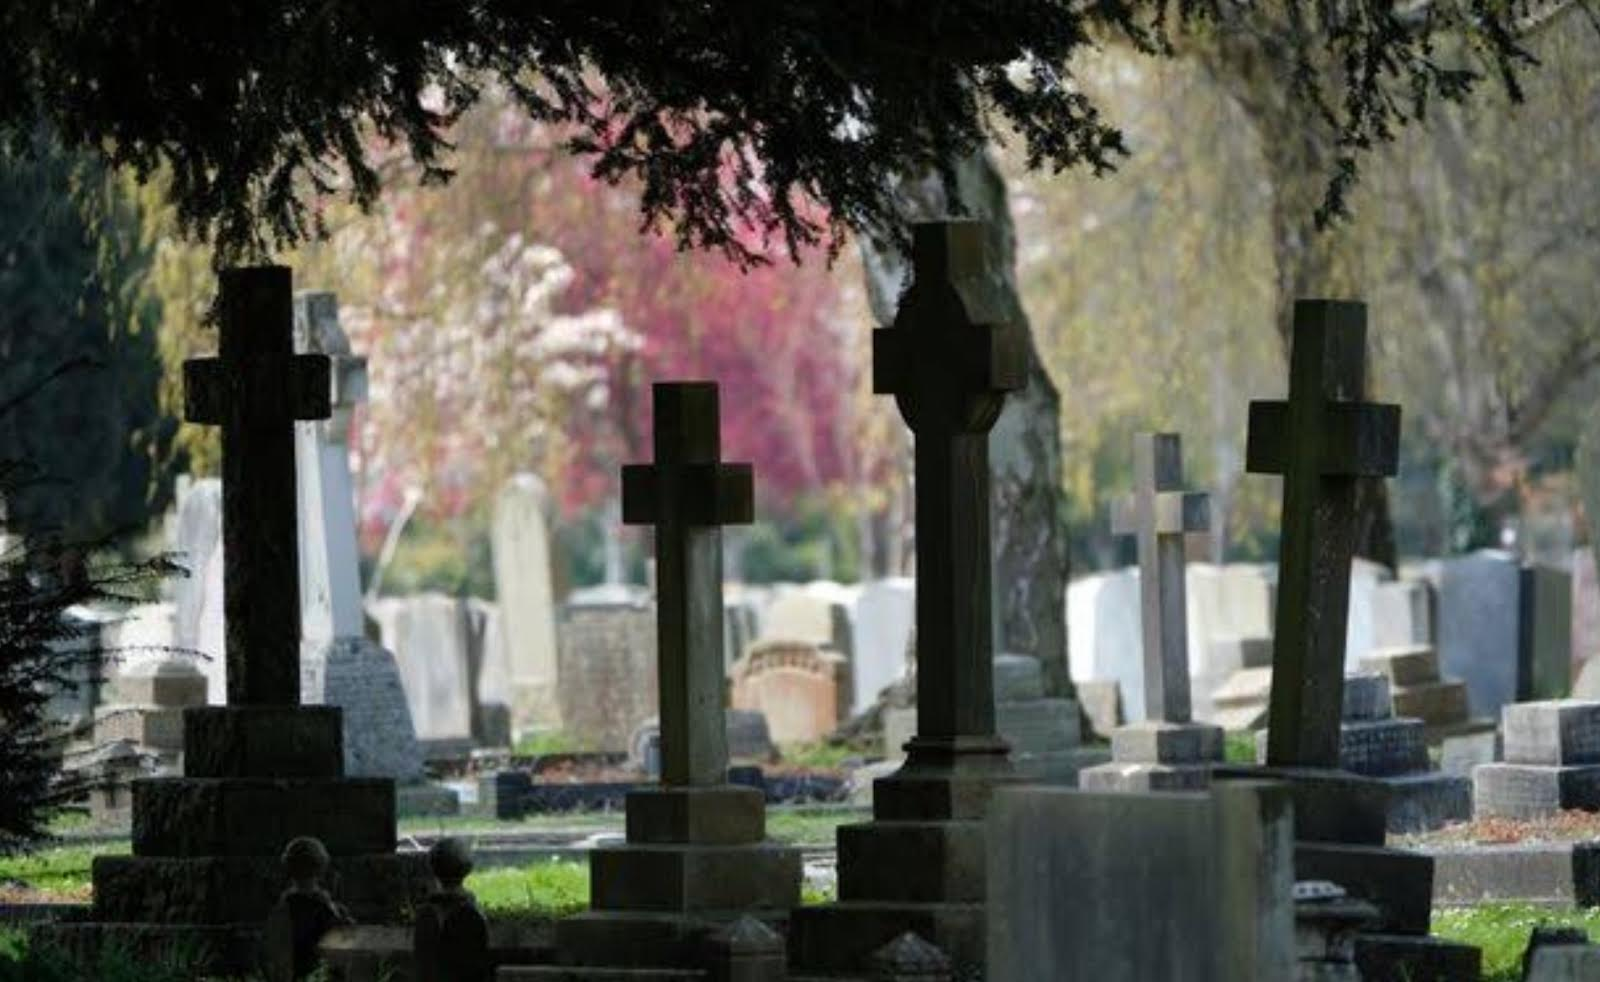 COLD CALLING BY PRE-PAID FUNERAL PROVIDERS TO BE BANNED